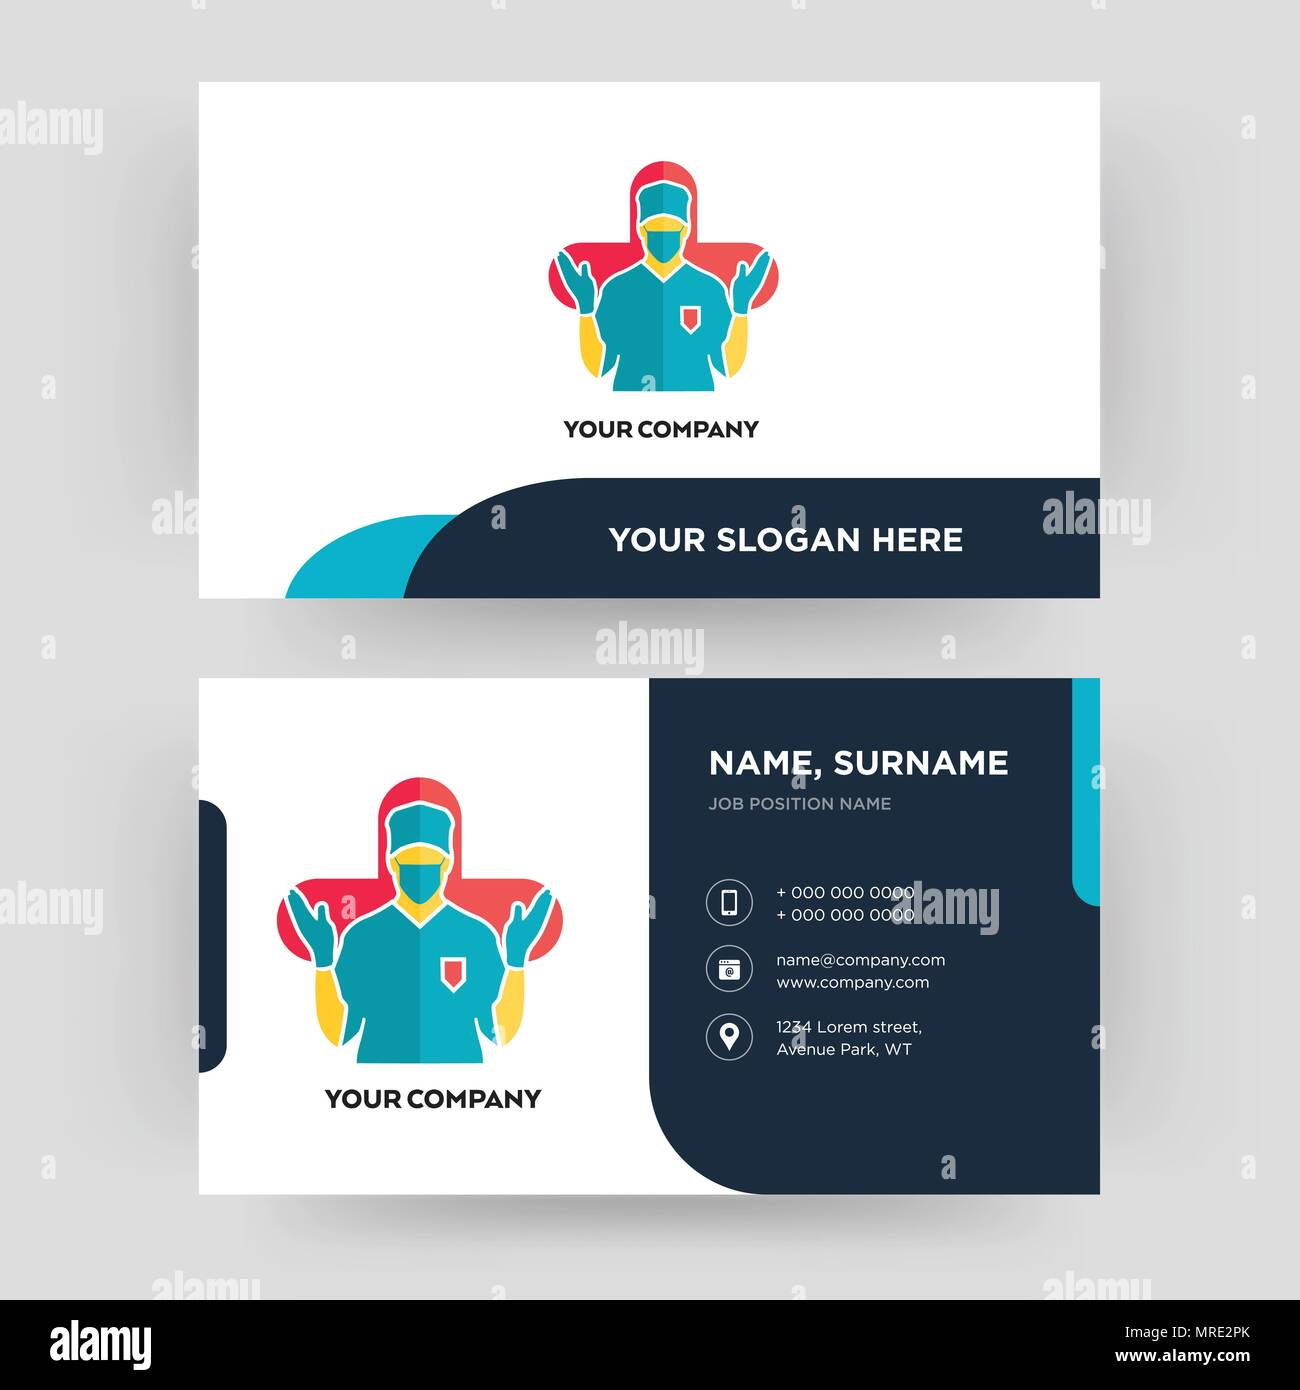 Surgeon business card design template visiting for your company surgeon business card design template visiting for your company modern creative and clean identity card vector colourmoves